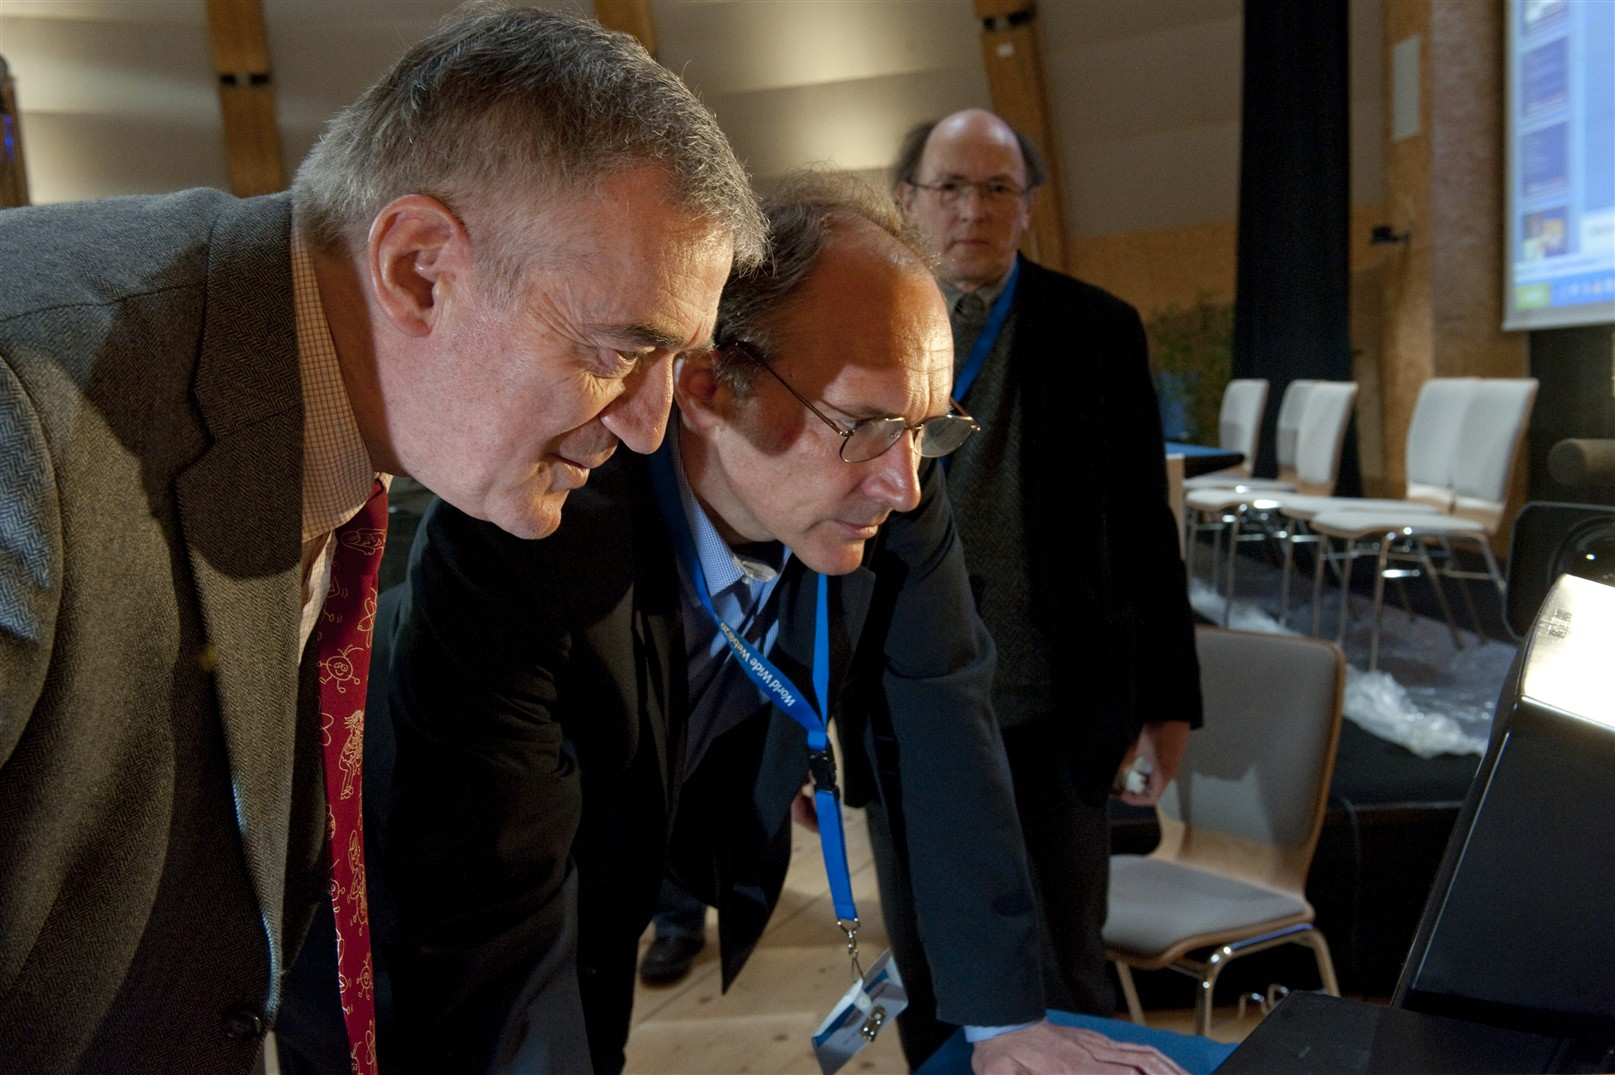 Tim Berners Lee and Robert Cailliau back to the NeXT computer.